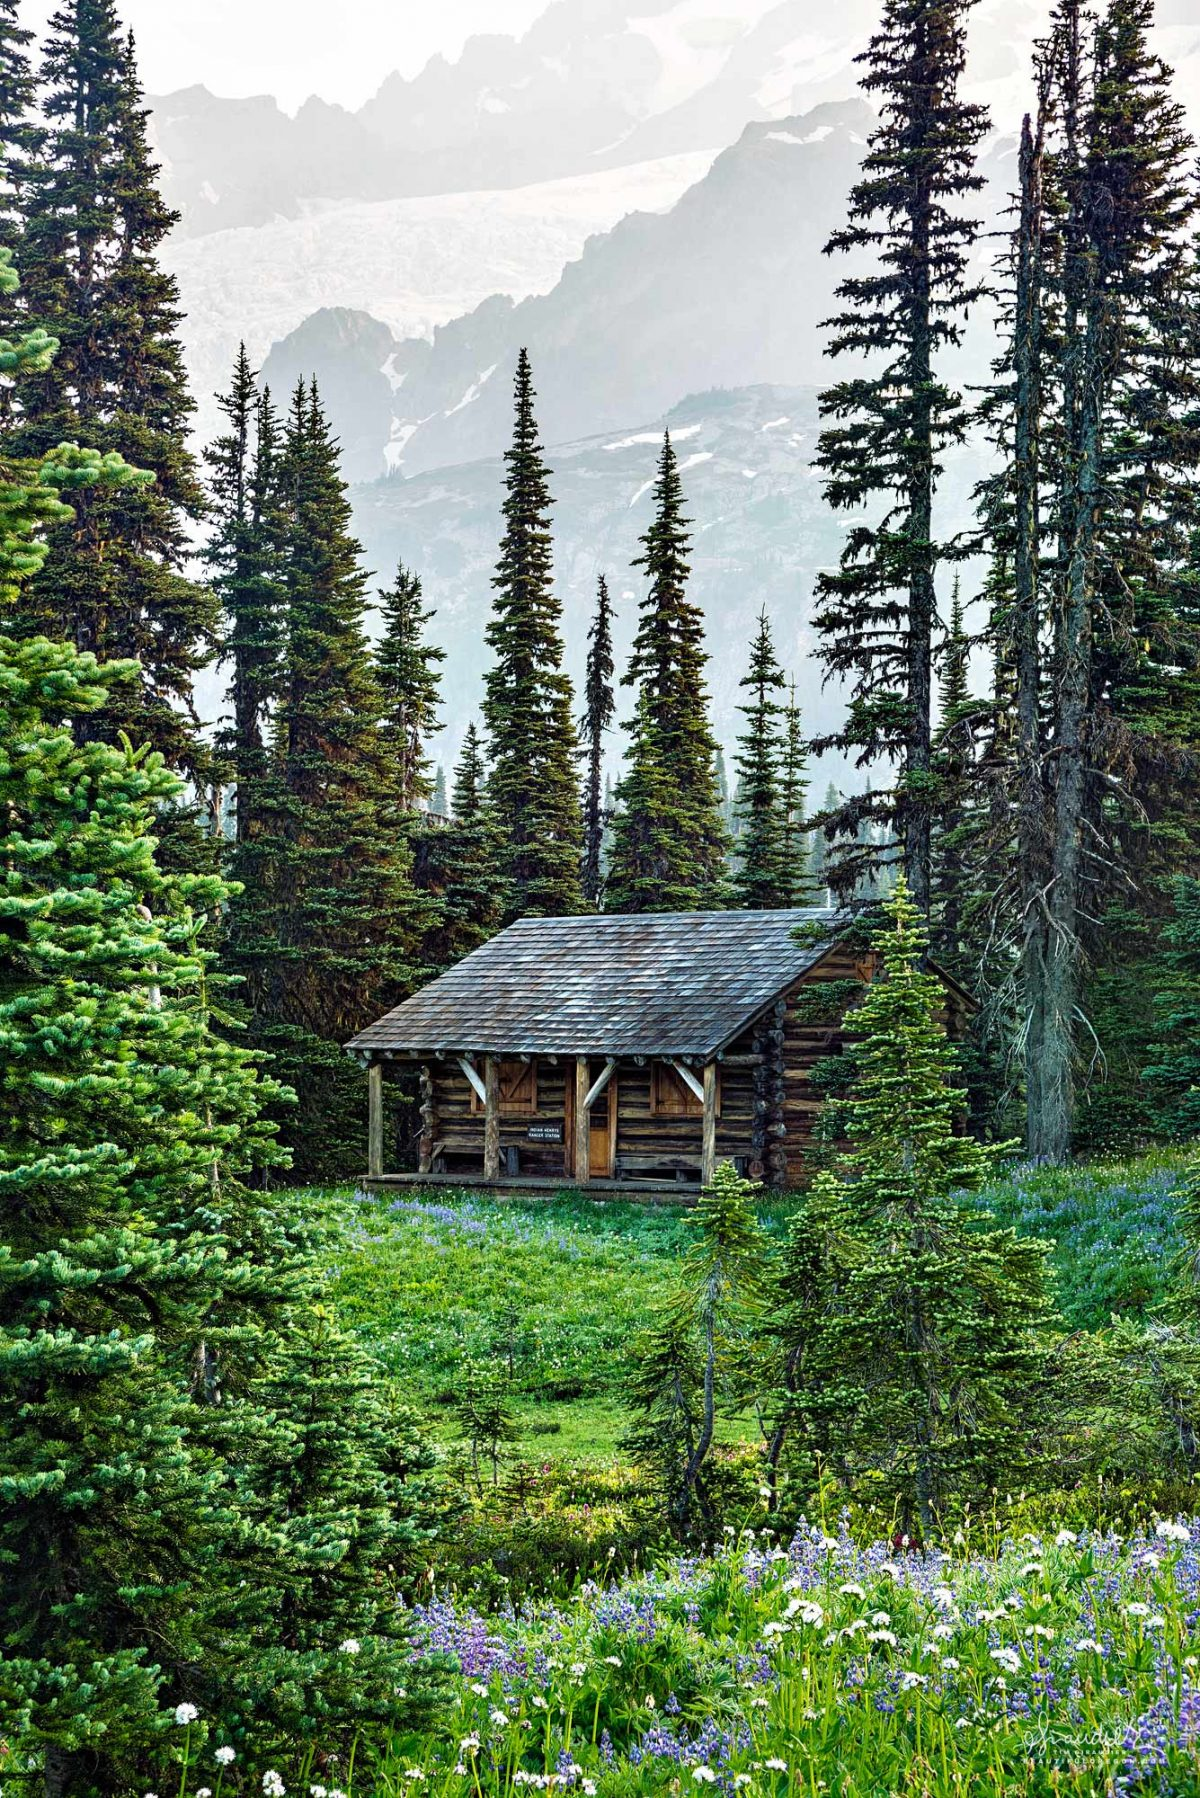 The picturesque Indian Henry Ranger Cabin, nestled amongst alpine forest and the lush meadows of Mount Rainier National Park. Pierce County, Washington State Cascades.